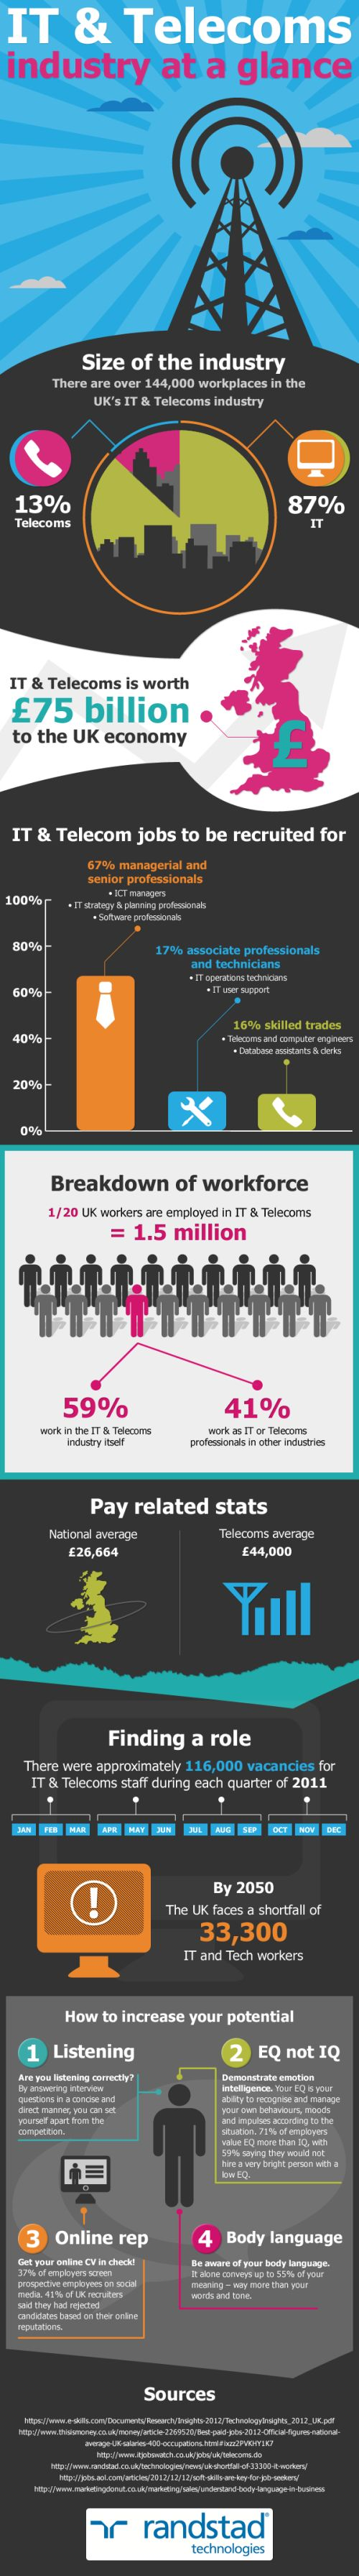 best images about telecom infographics how to use social media in your job search it telecoms infographic